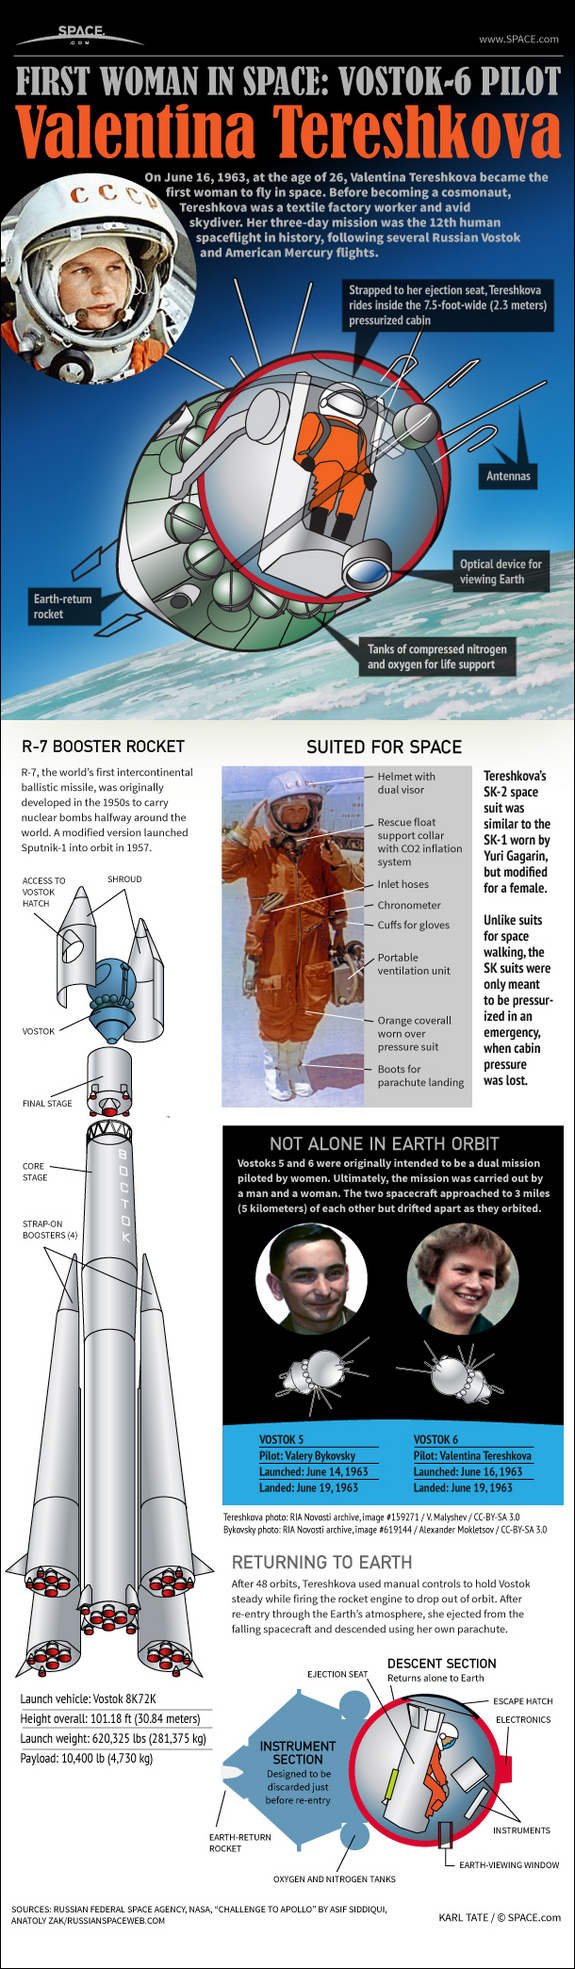 Find out how Valentina Tereshkova's historic Vostok-6 flight worked in this SPACE.com infographic.